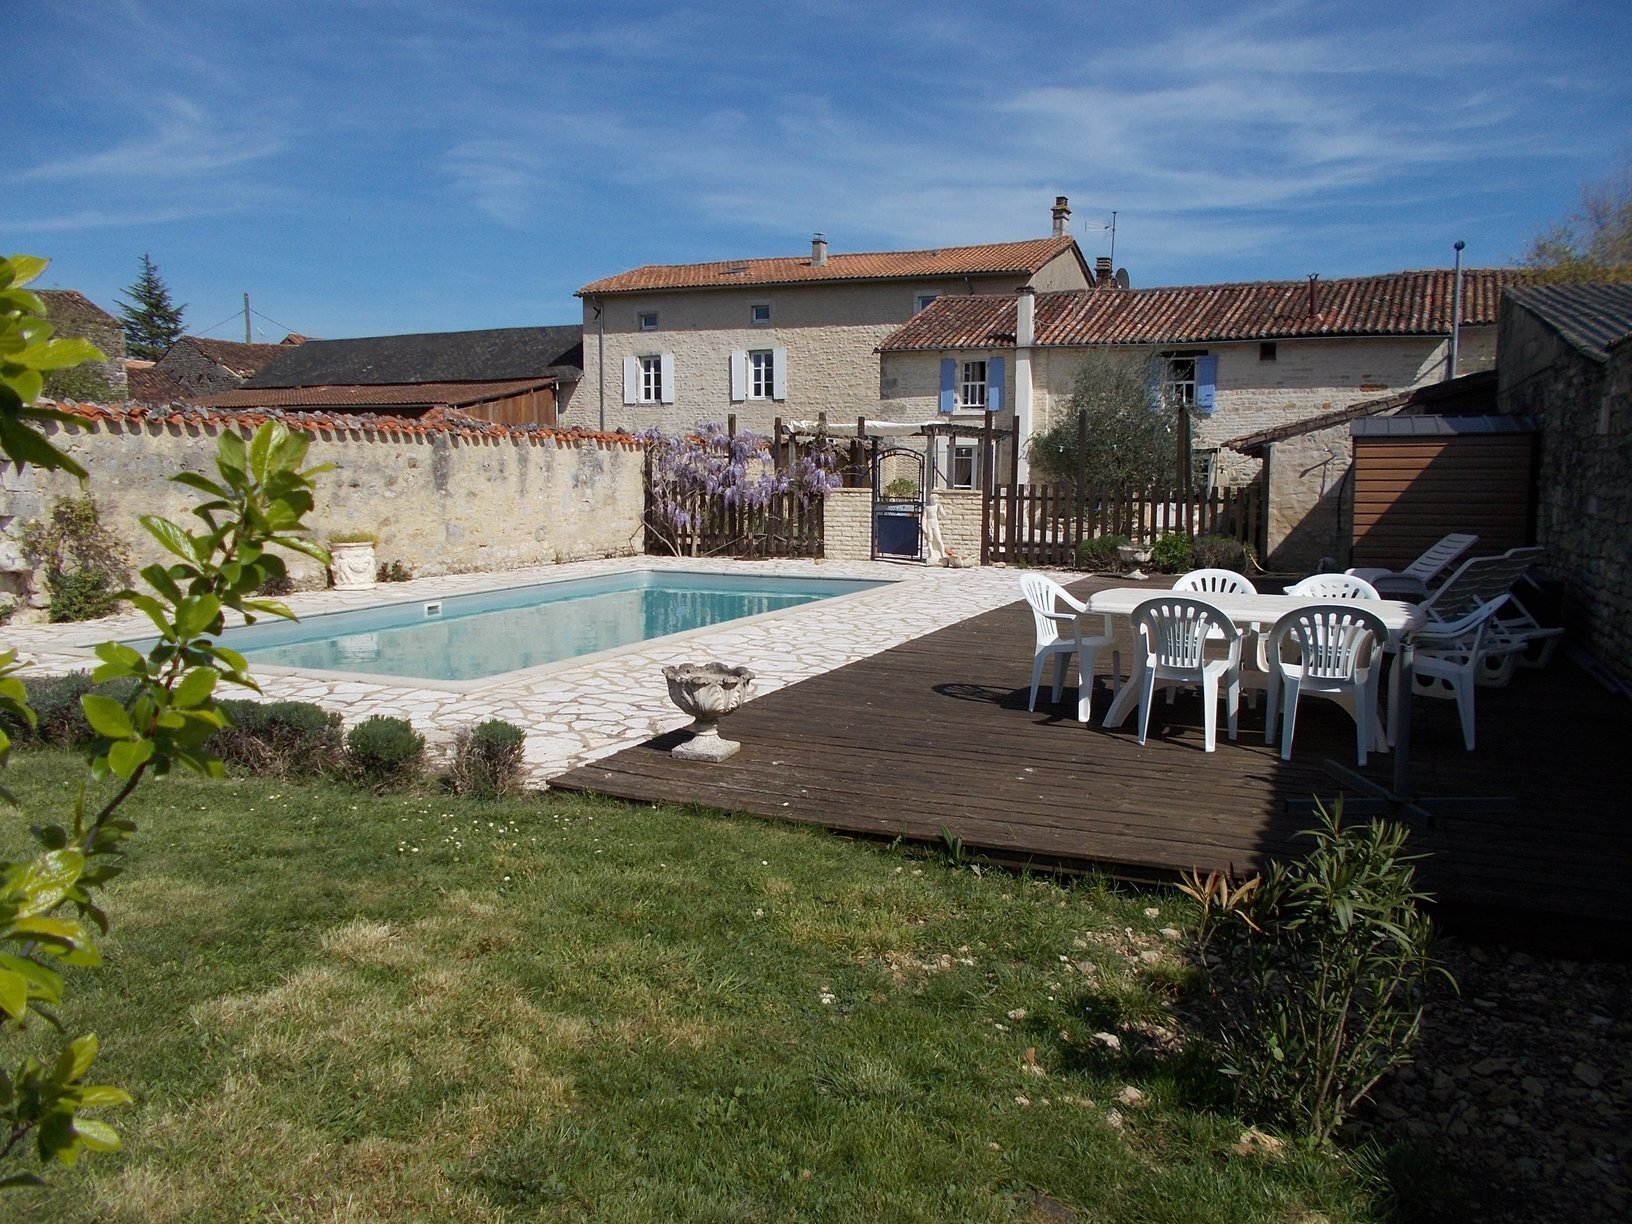 8 Bedroomed stone property in a pretty village